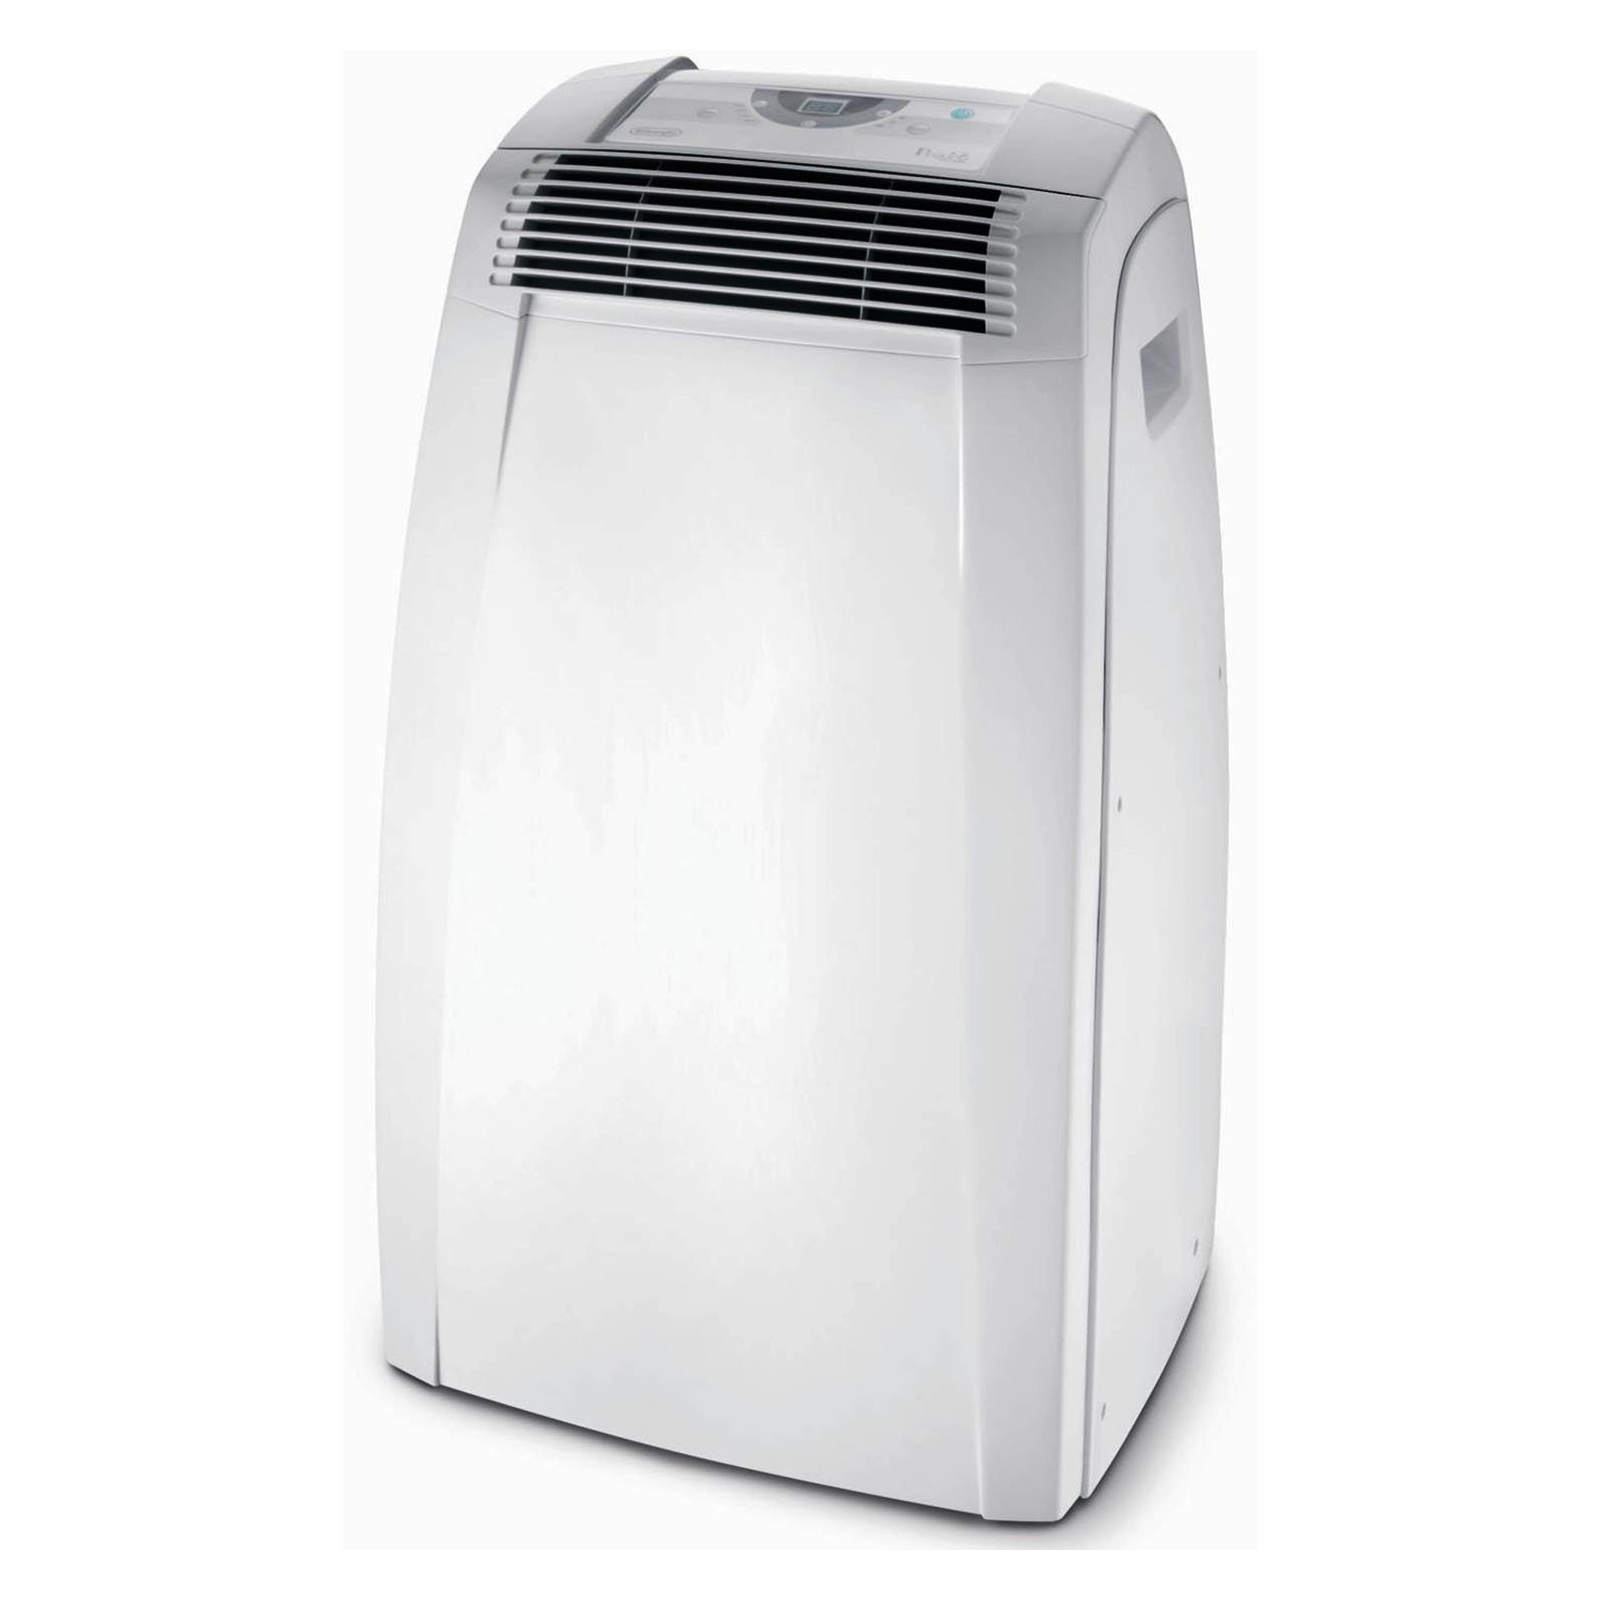 DeLonghi PACC100EC Portable Air Conditioner